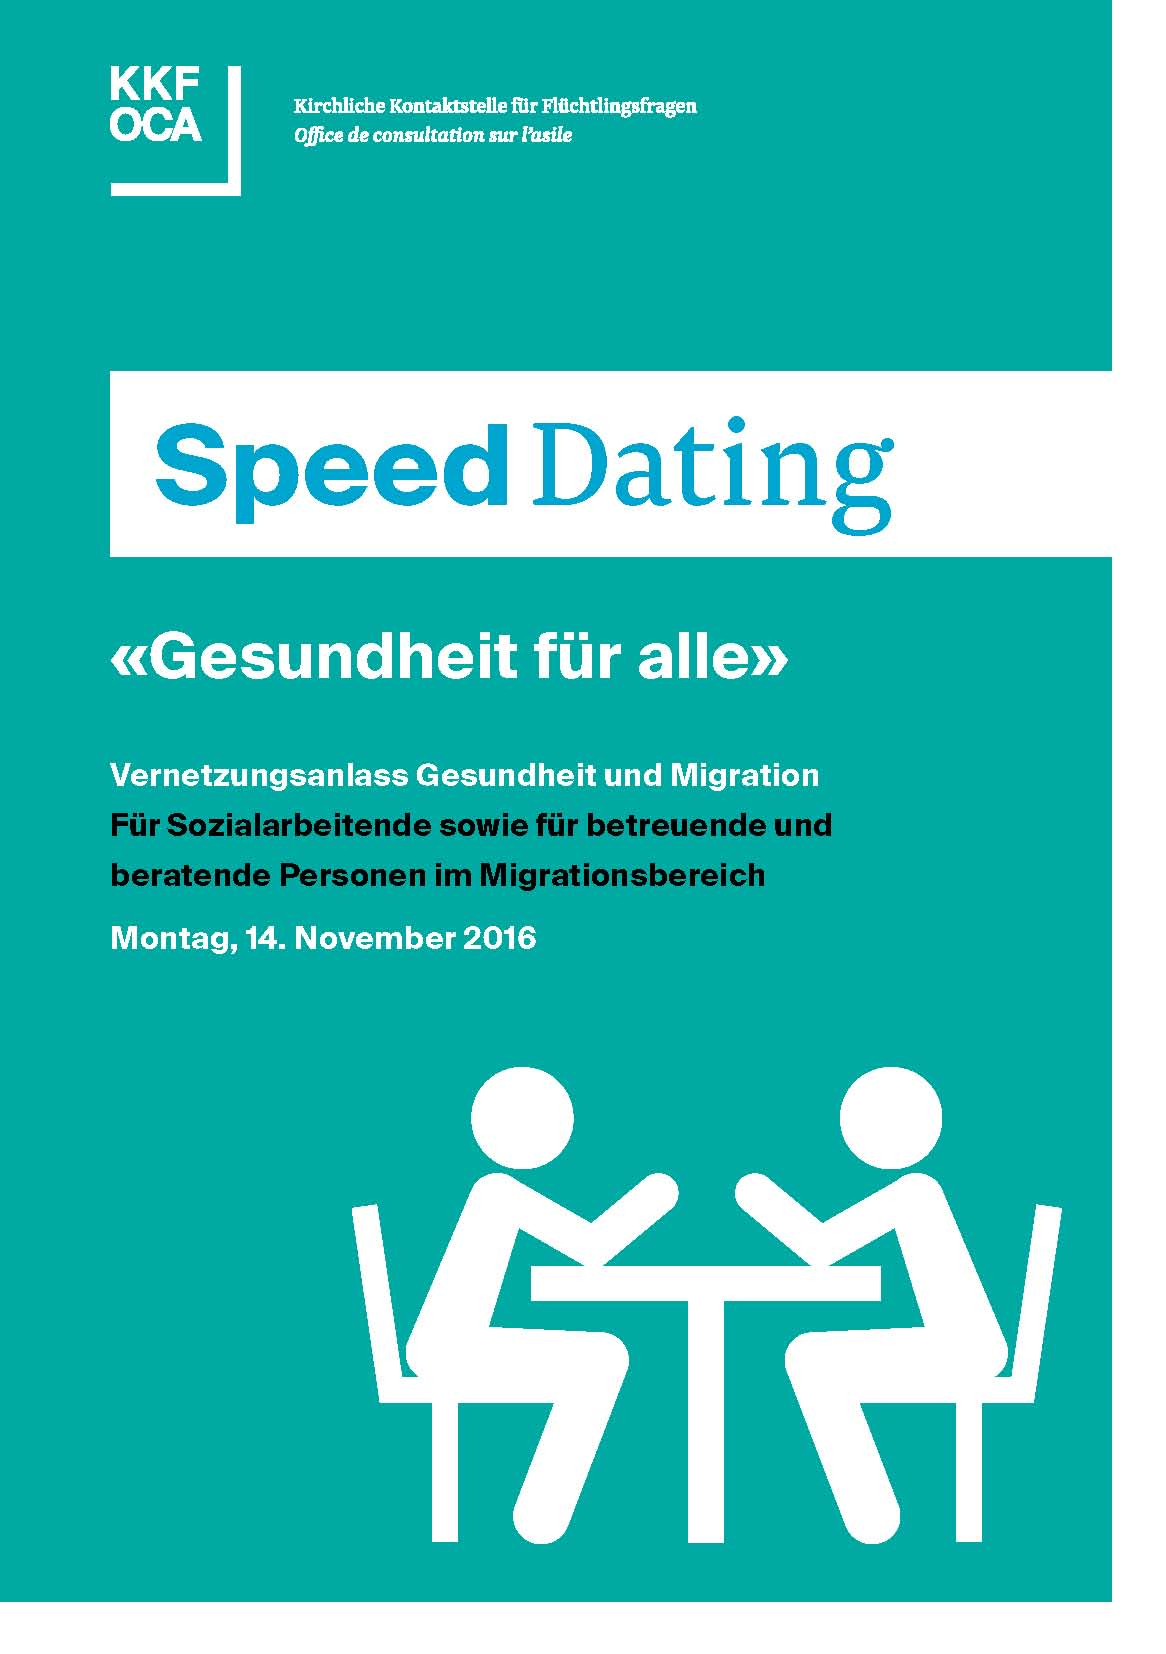 speed dating professionals singapore flyer